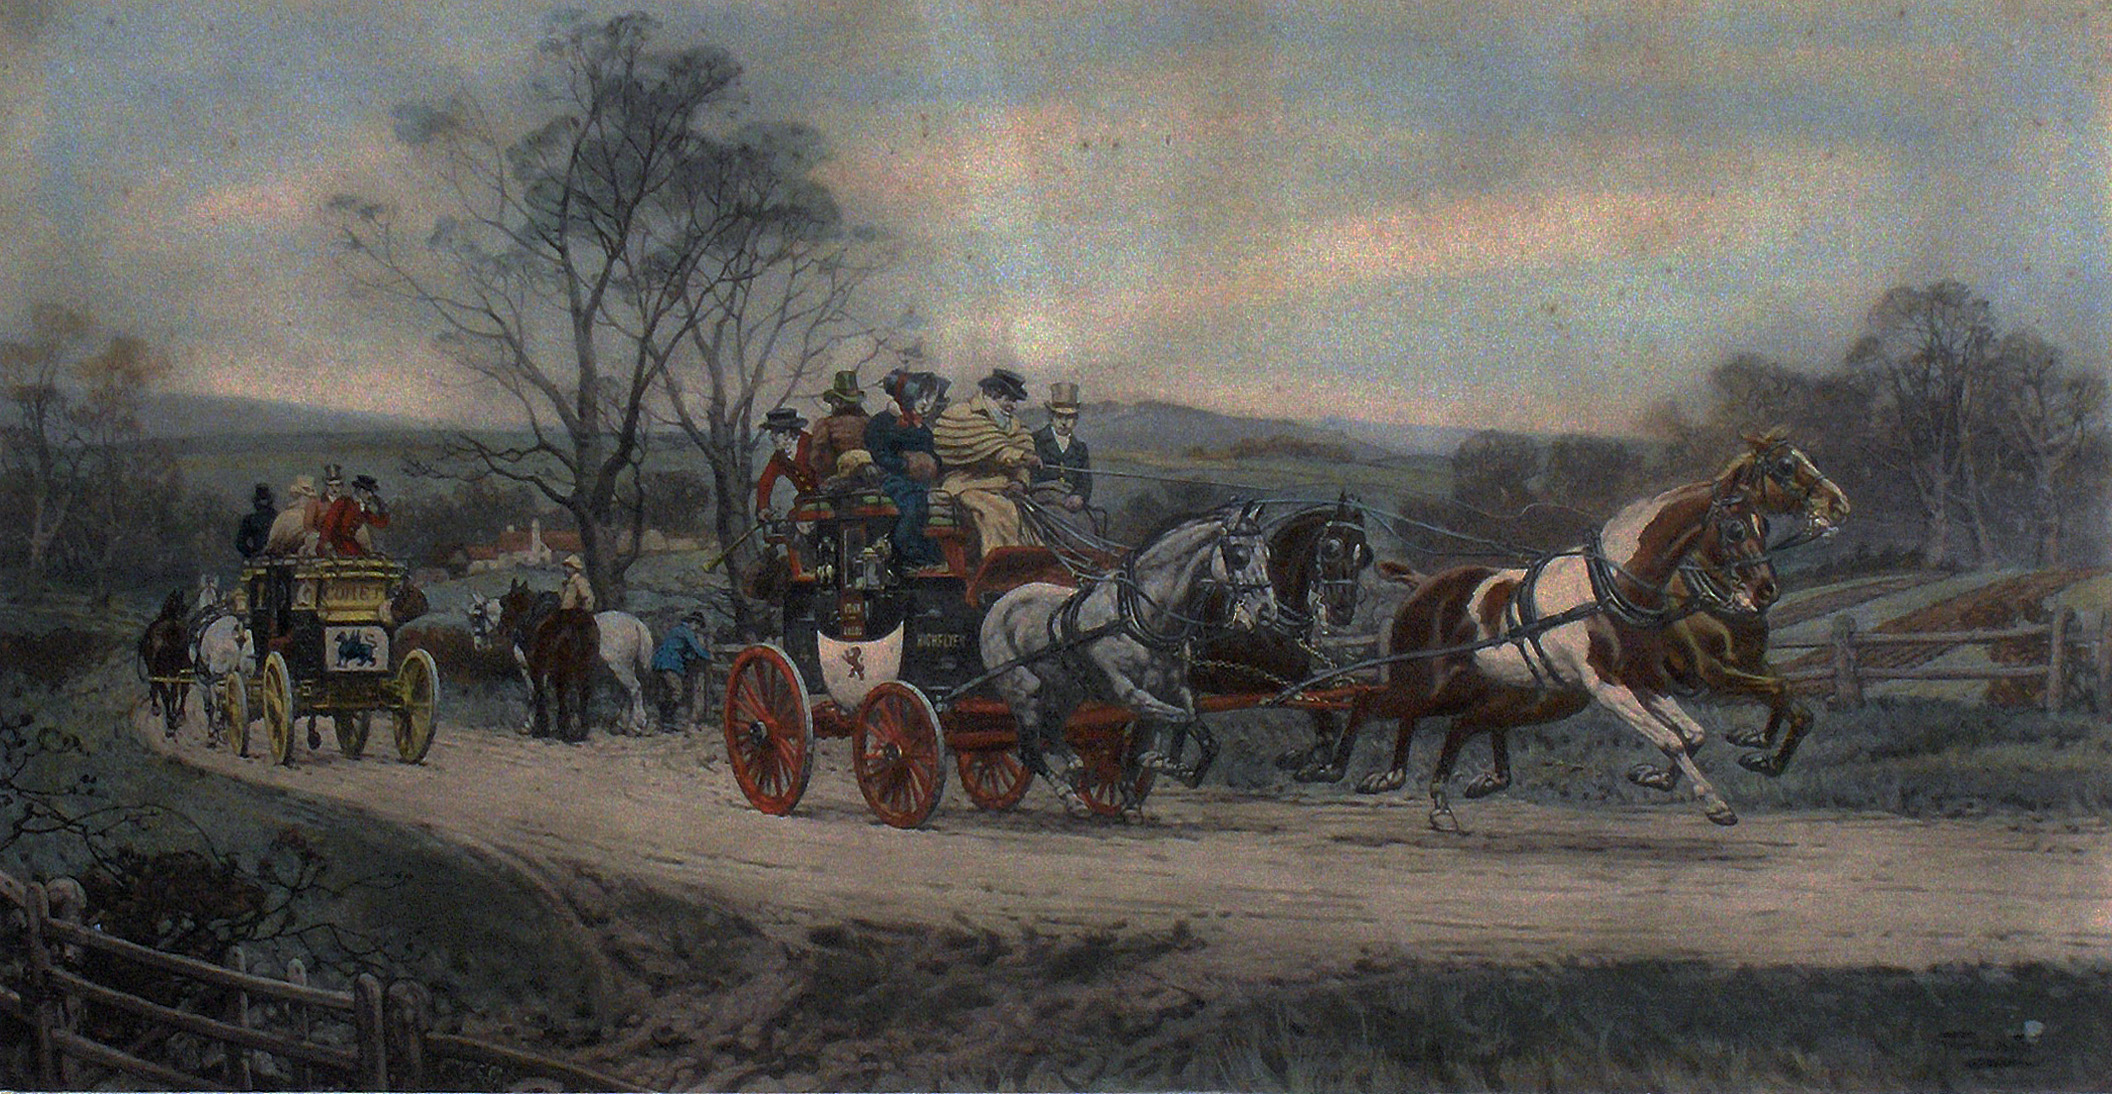 Wells Fargo Stagecoach Drawing of a Stagecoach in England